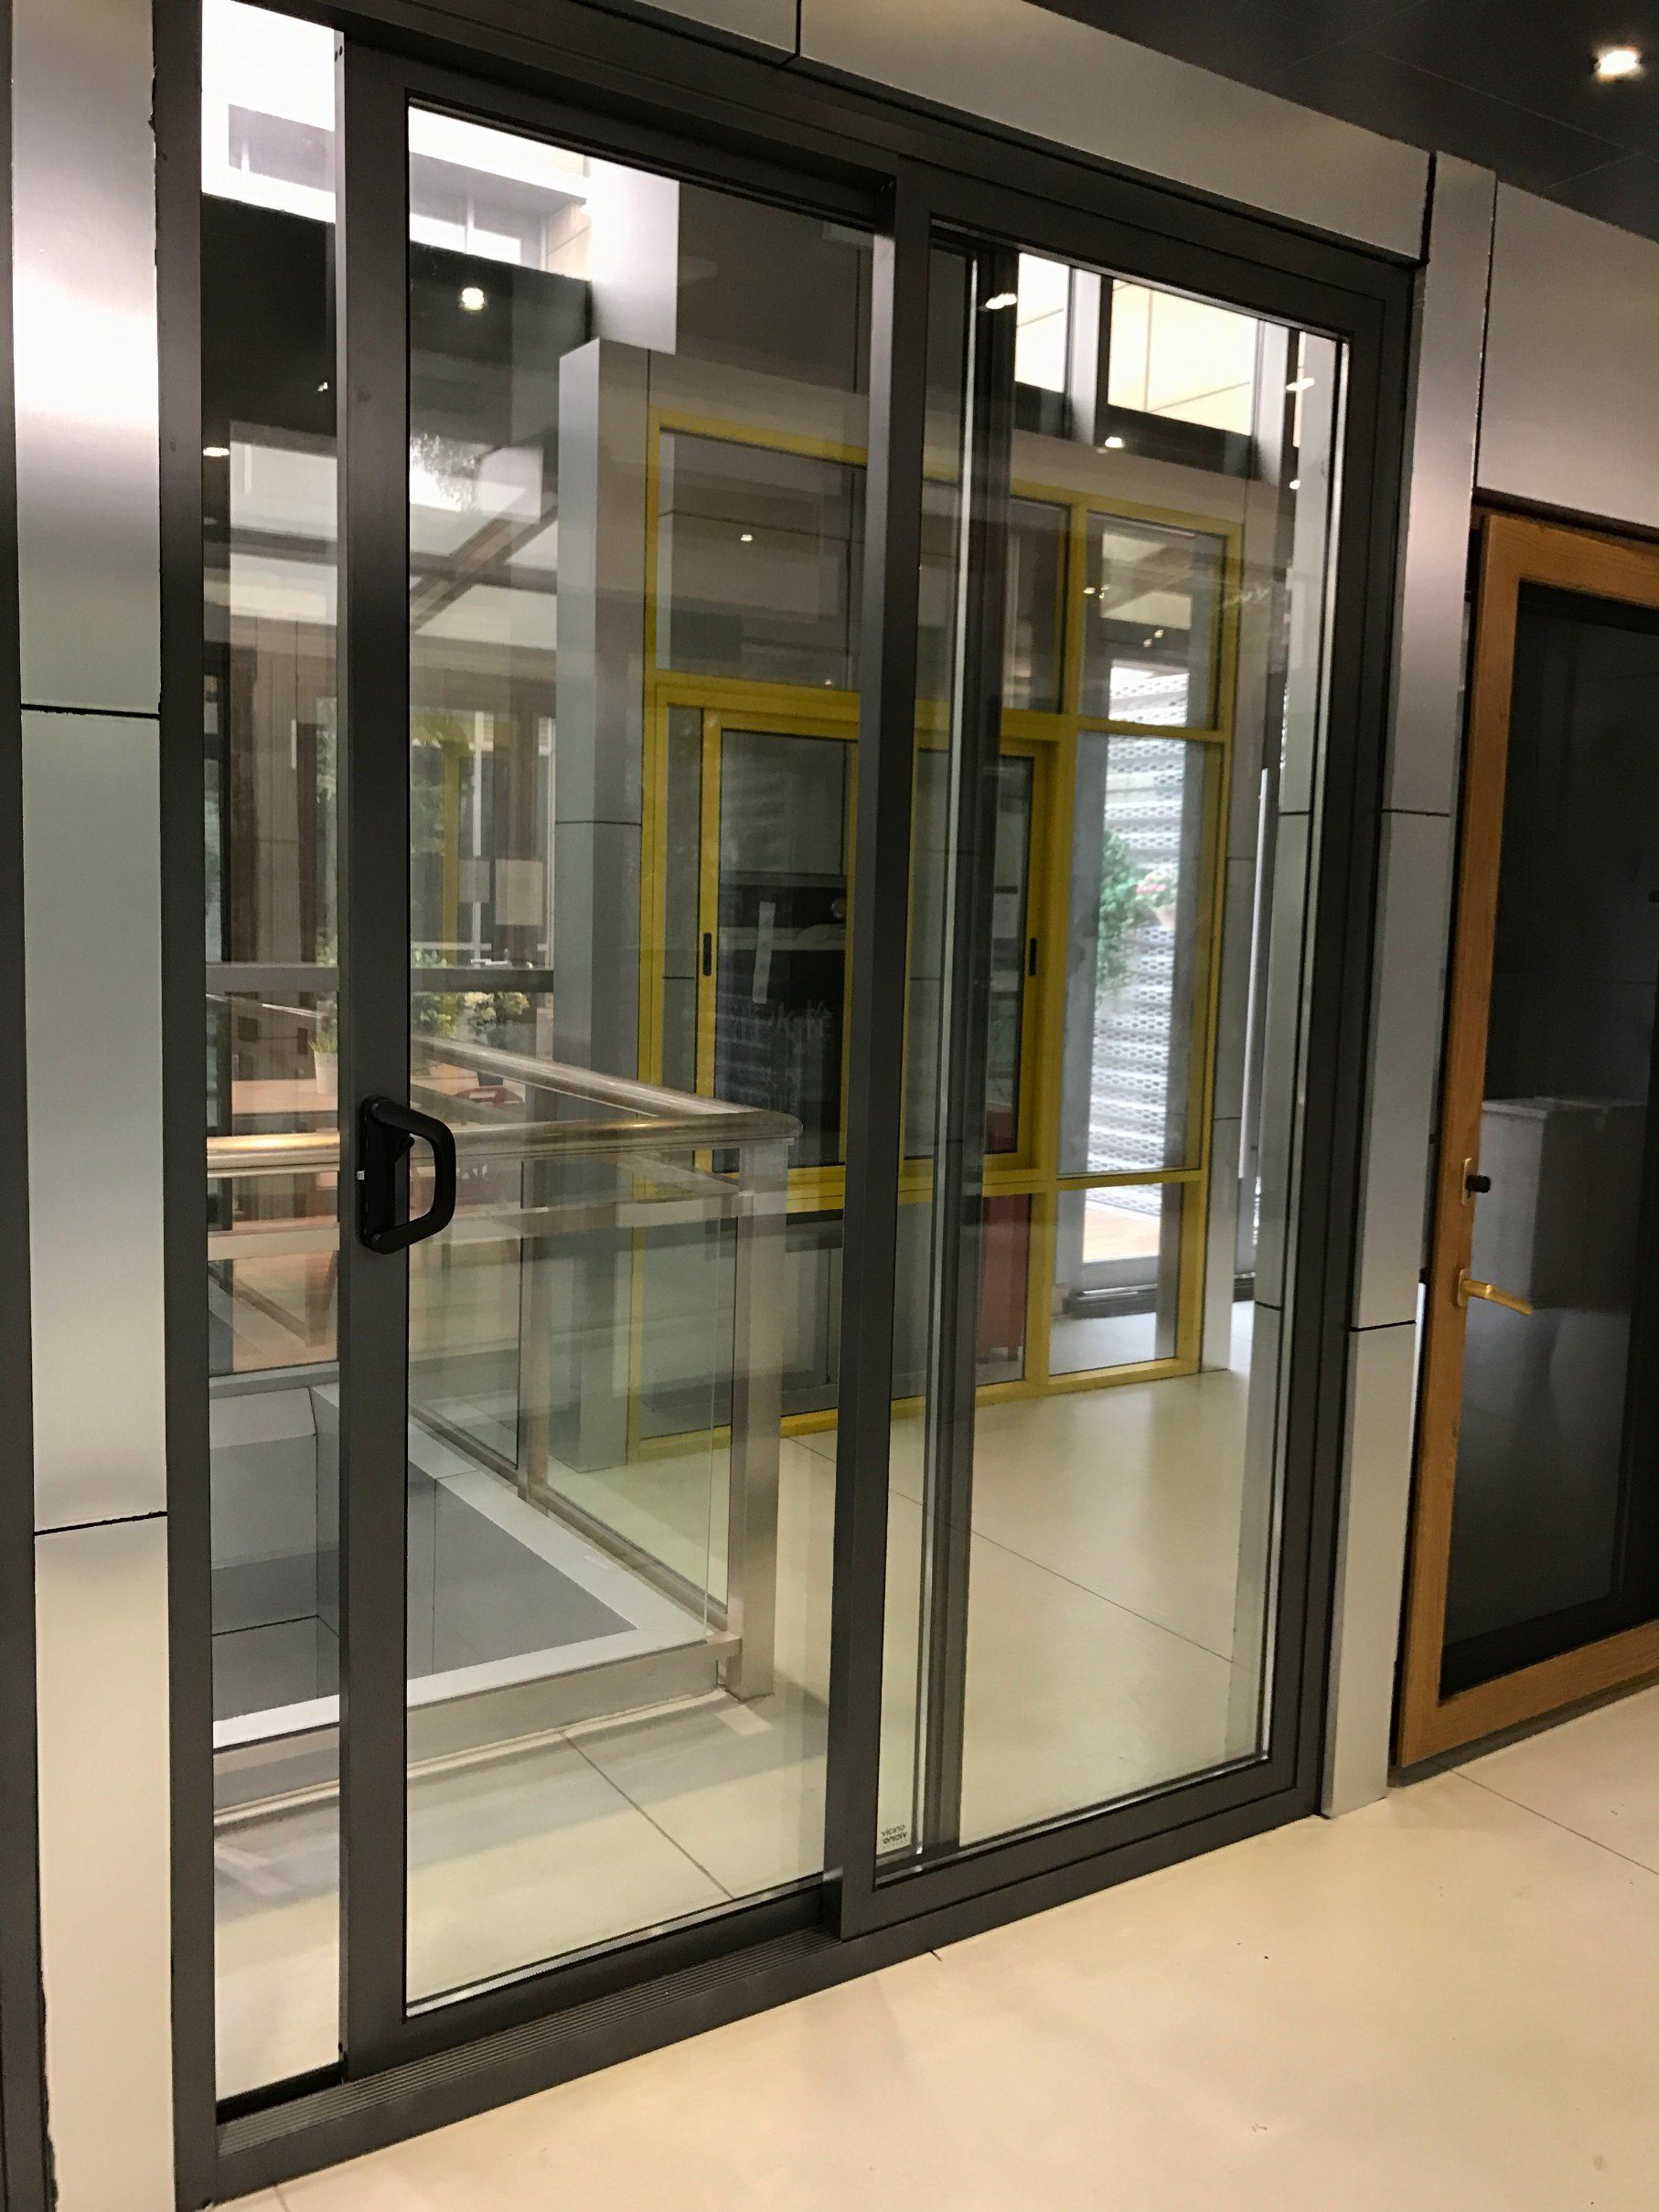 This Sliding Door System Designed For Corridors Design 1 Use Oblique Cutting Method To Cut Sashes With Trapezoid